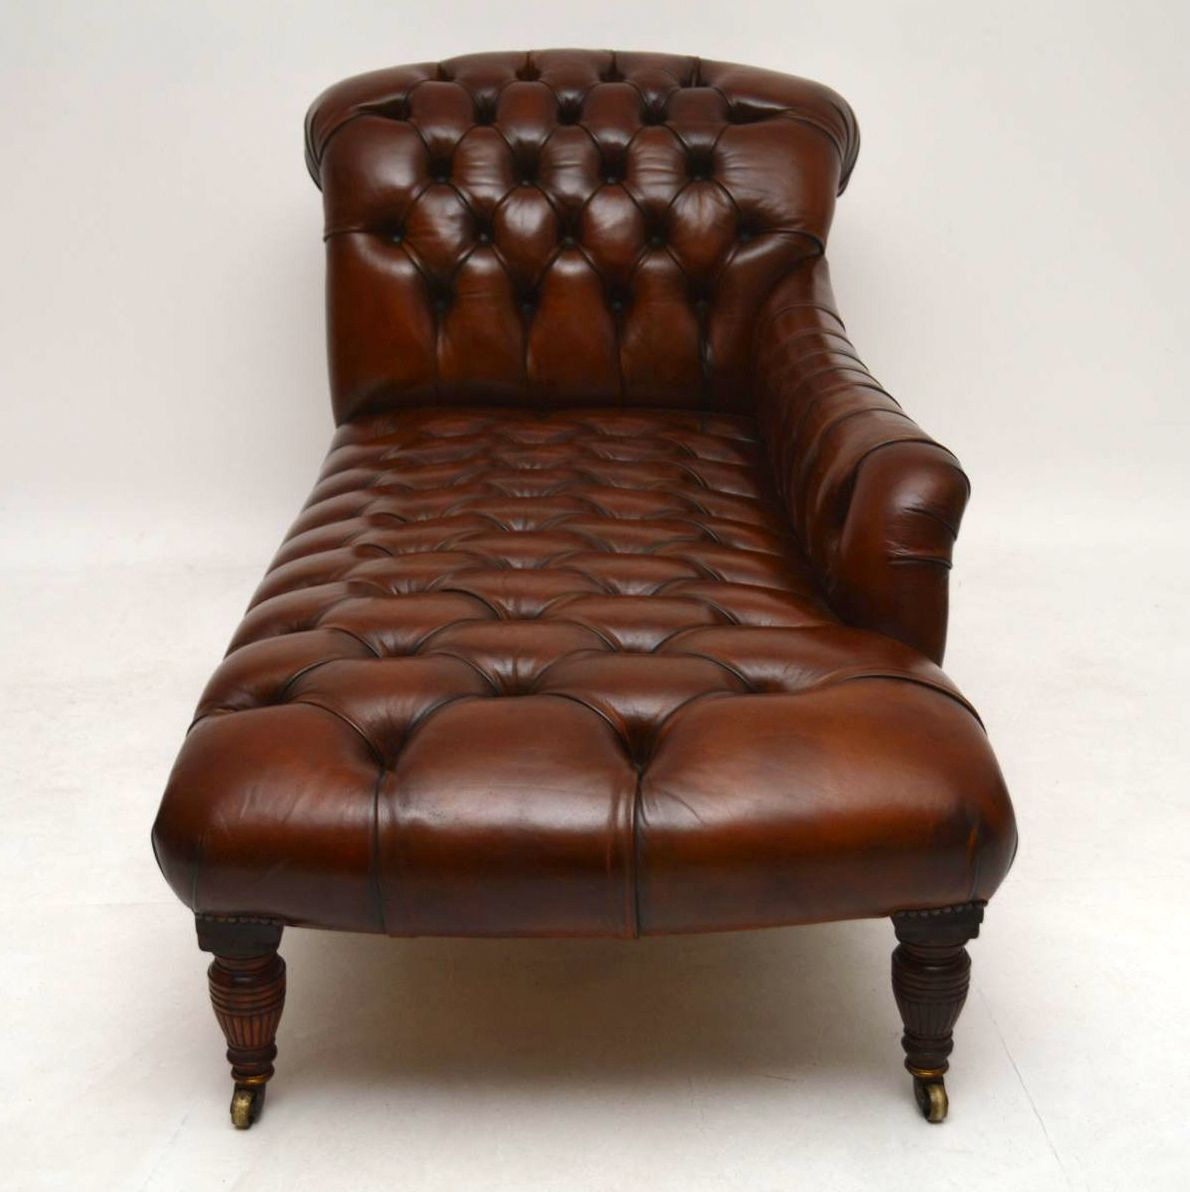 Antique Victorian Deep Buttoned Leather Chaise Lounge